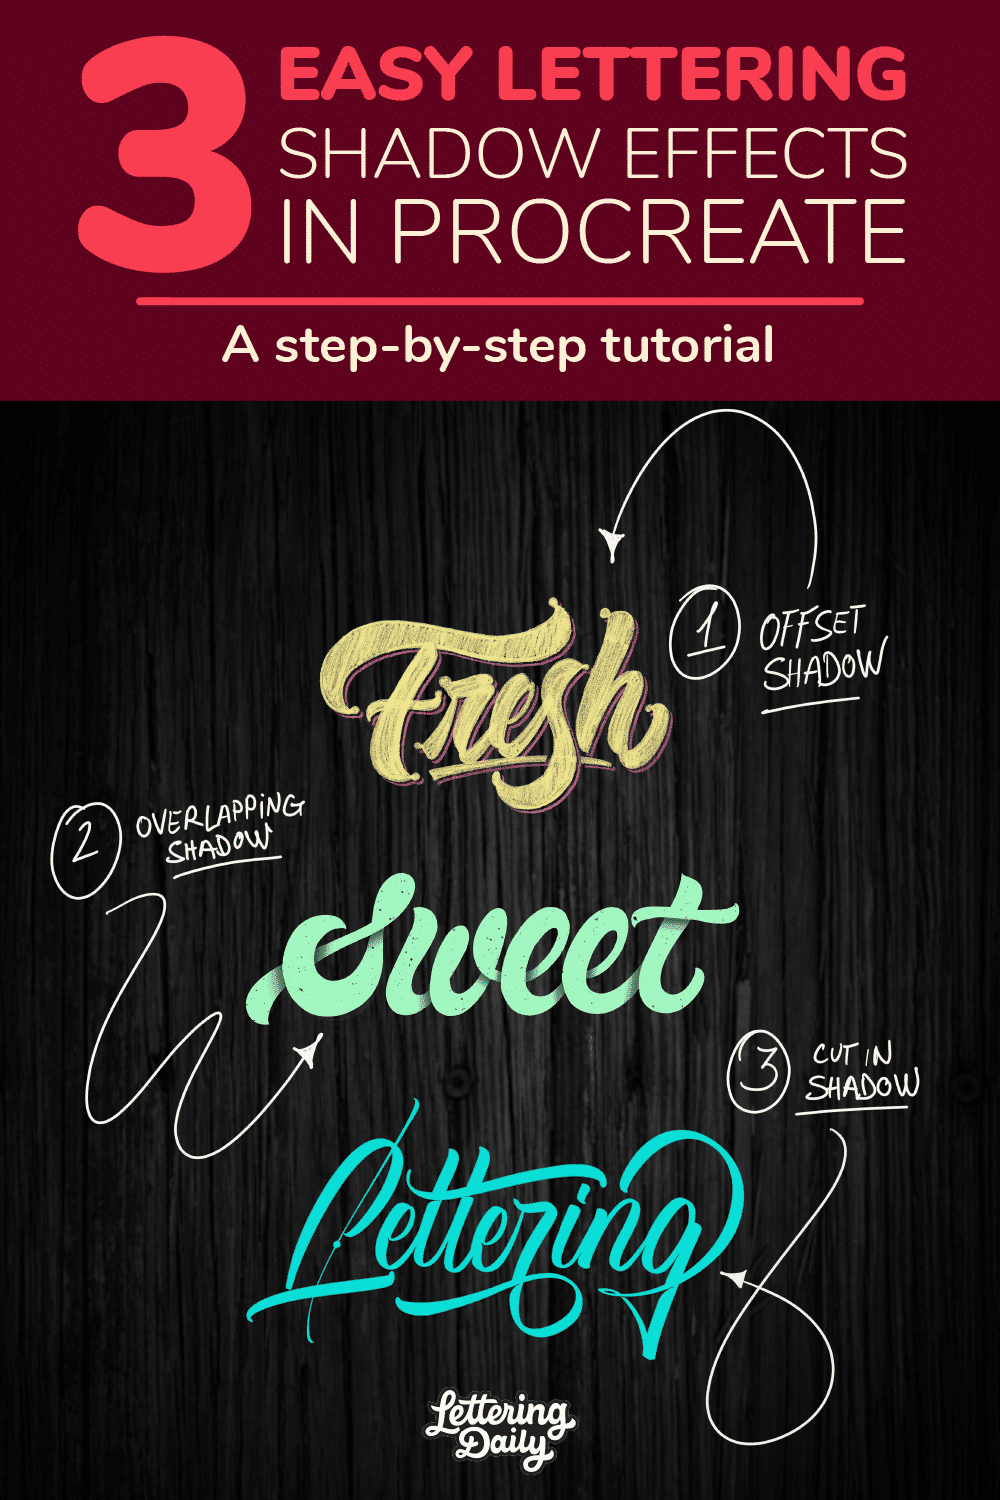 3-Easy-Lettering-Shadow-Effects-In-Procreate-Pin-Lettering-Daily-01.png